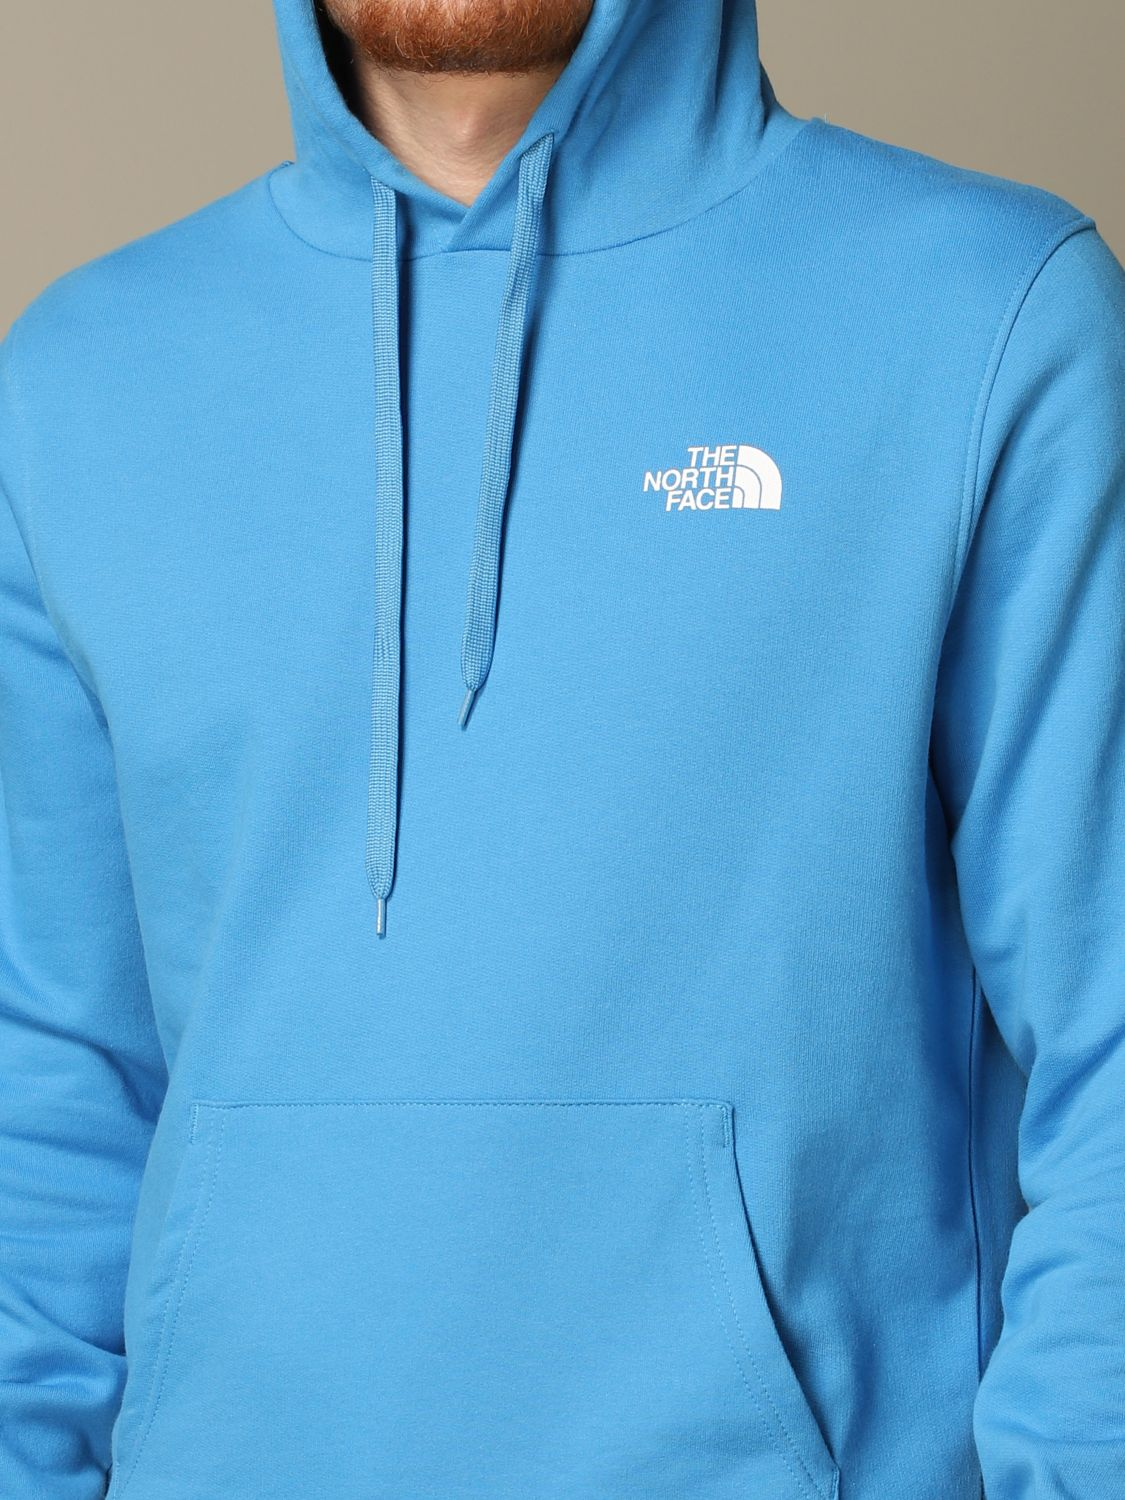 Sweatshirt The North Face: Sweatshirt men The North Face gnawed blue 3